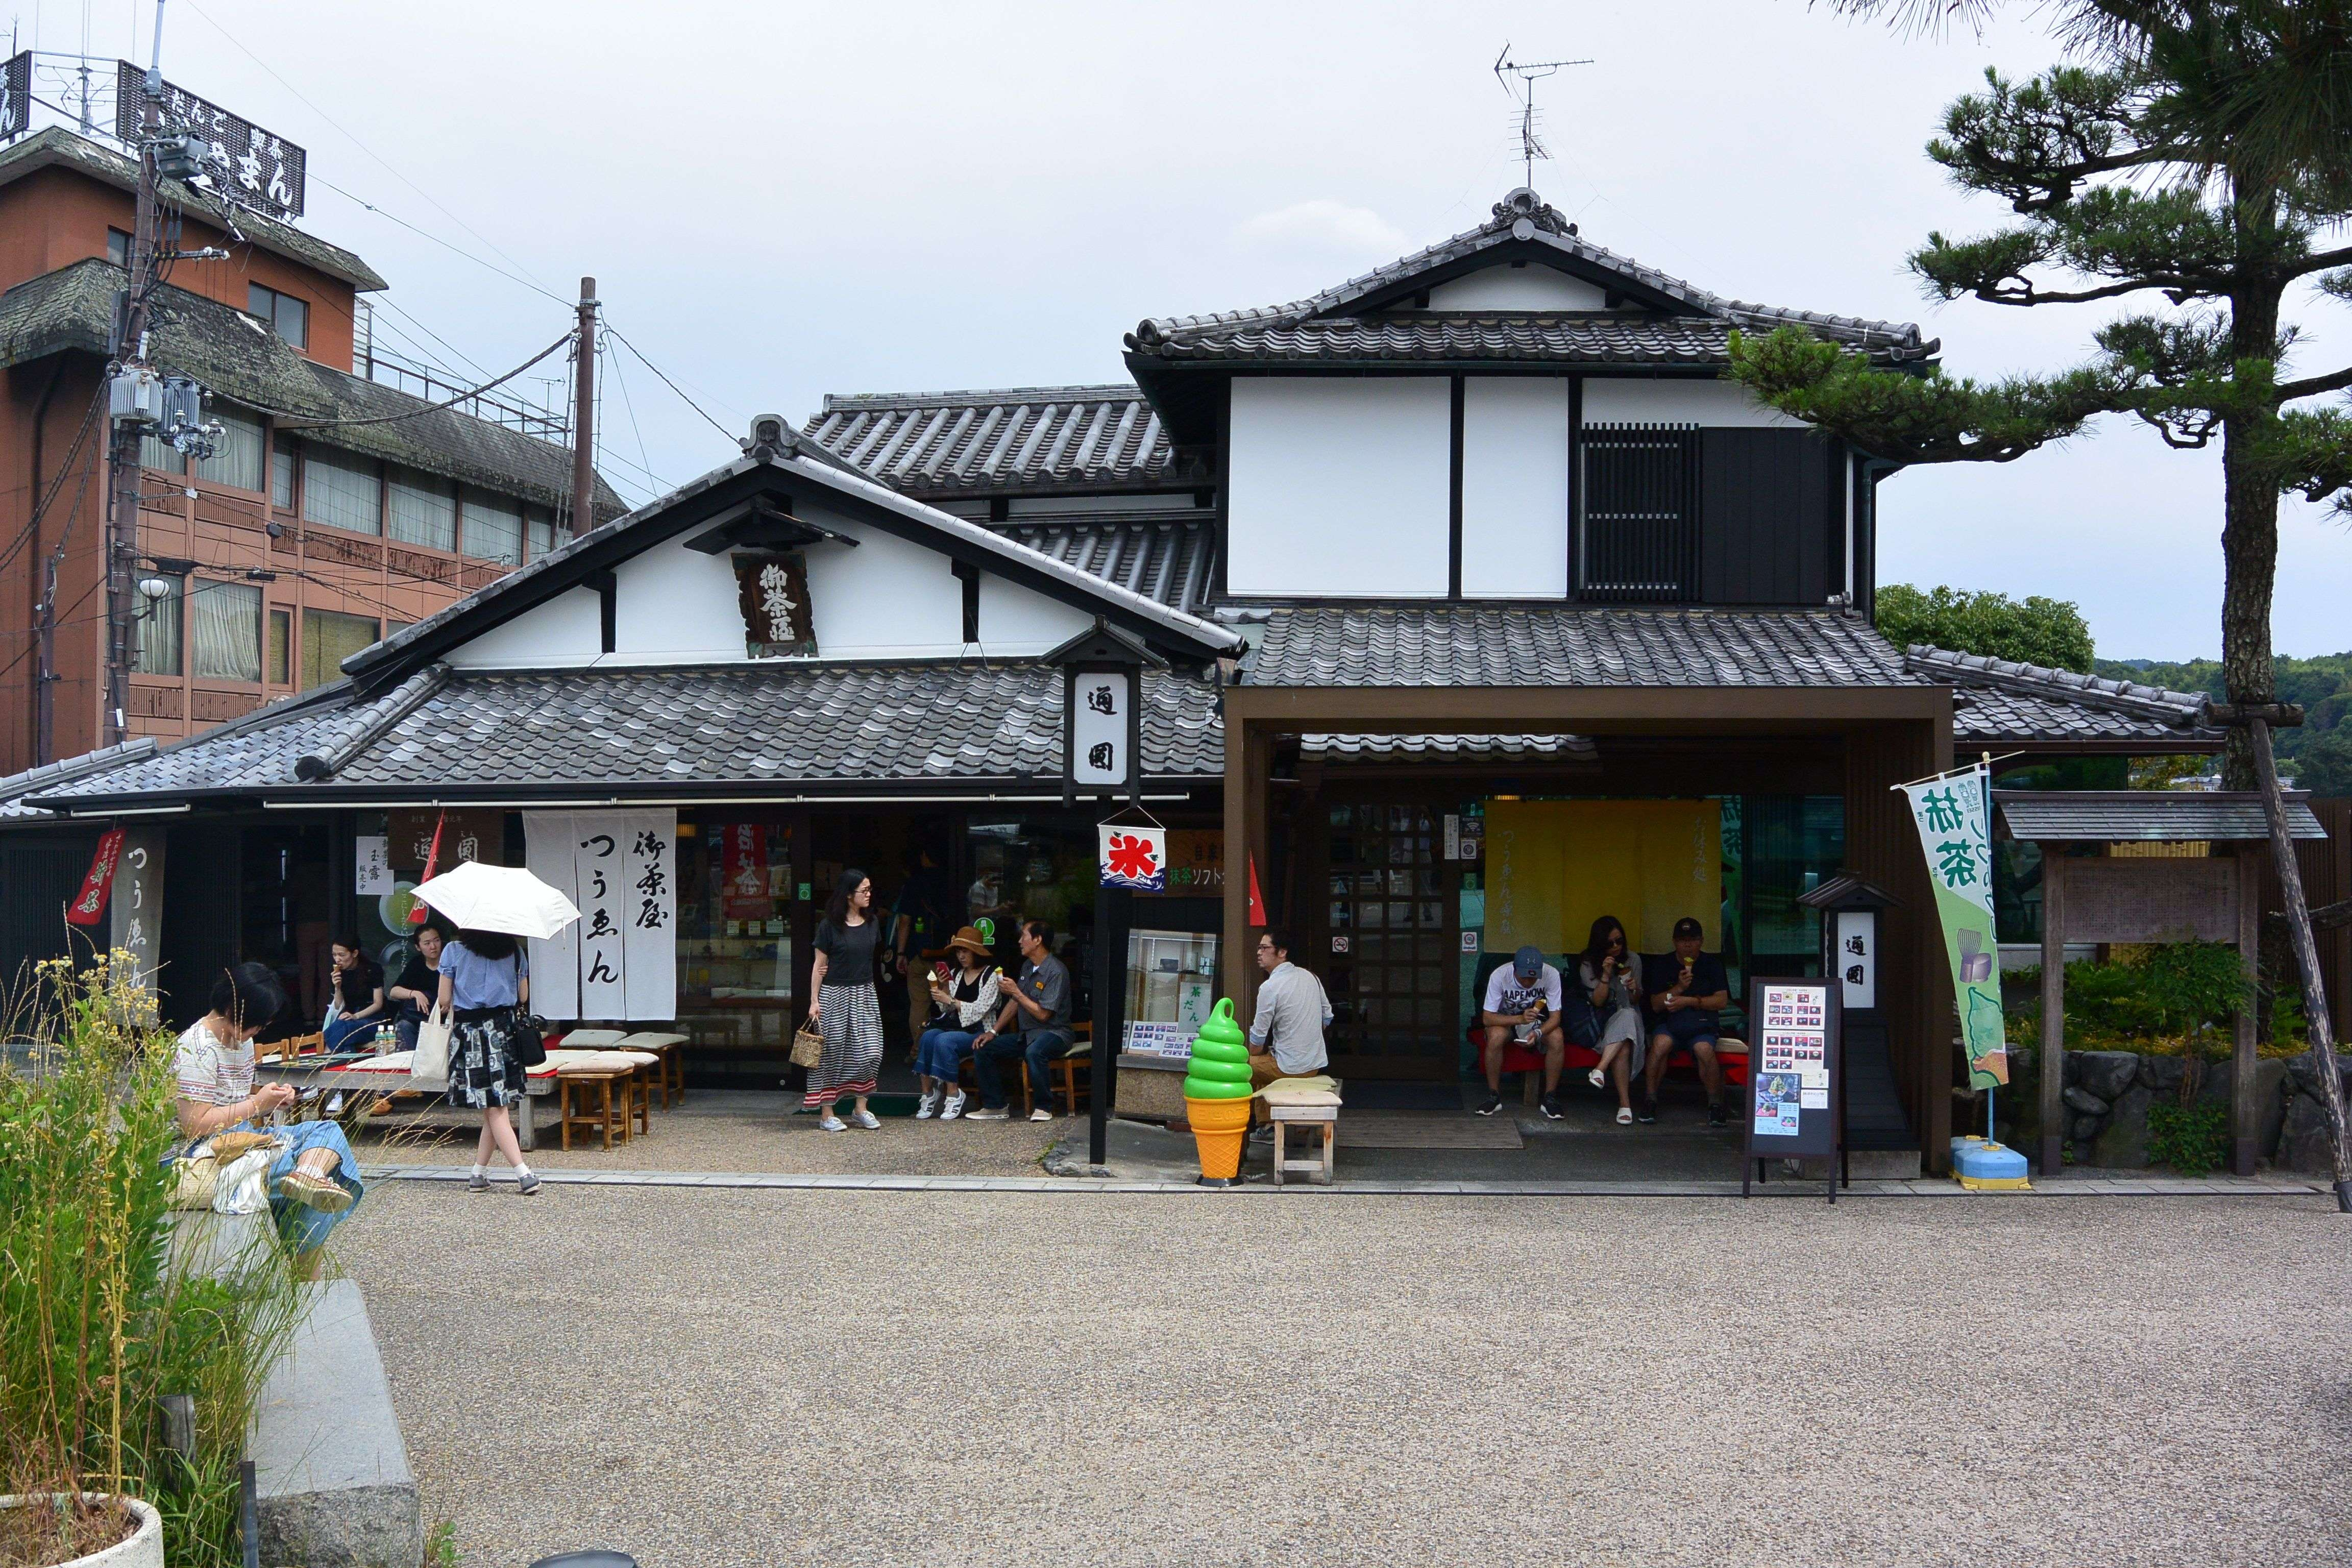 The oldest tea house in the world still serves great cups of tea